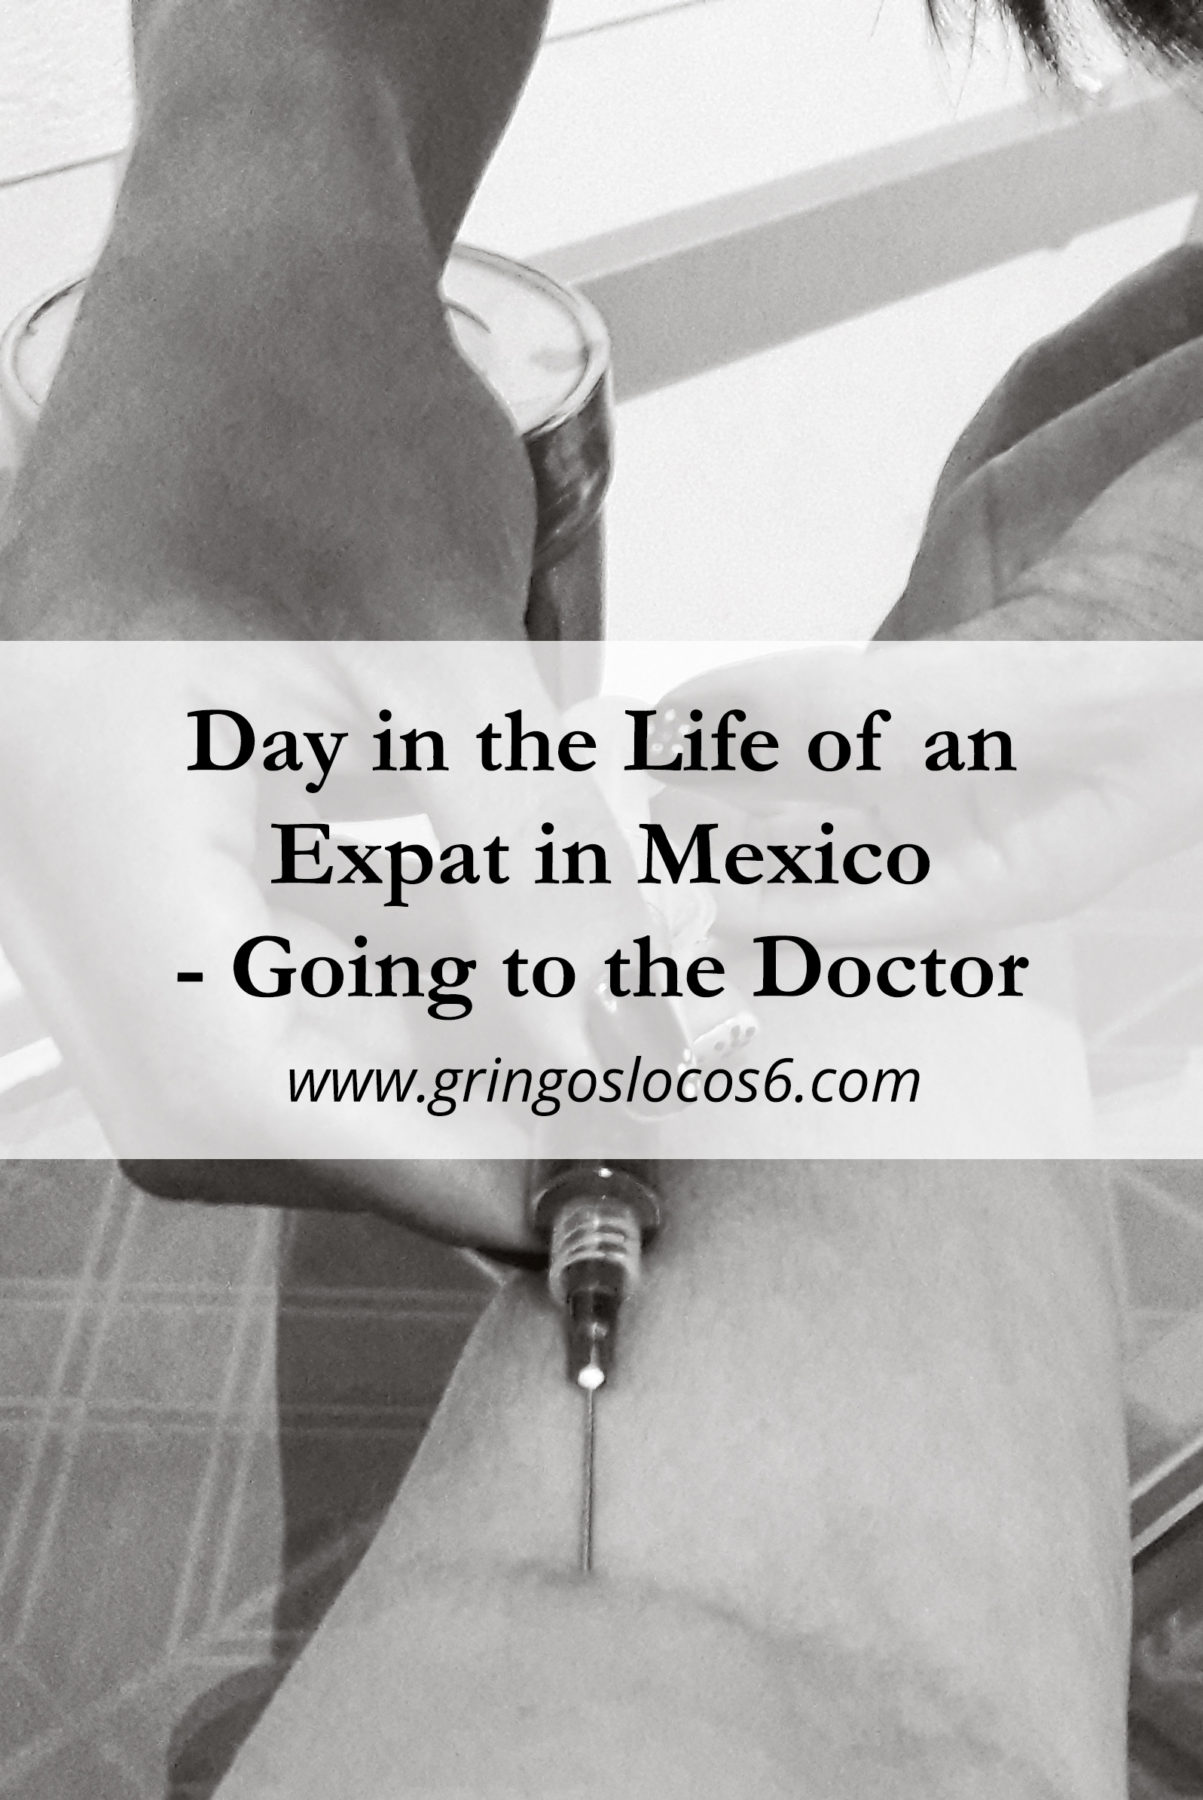 Day in the Life of an Expat in Mexico - Going to the Doctor